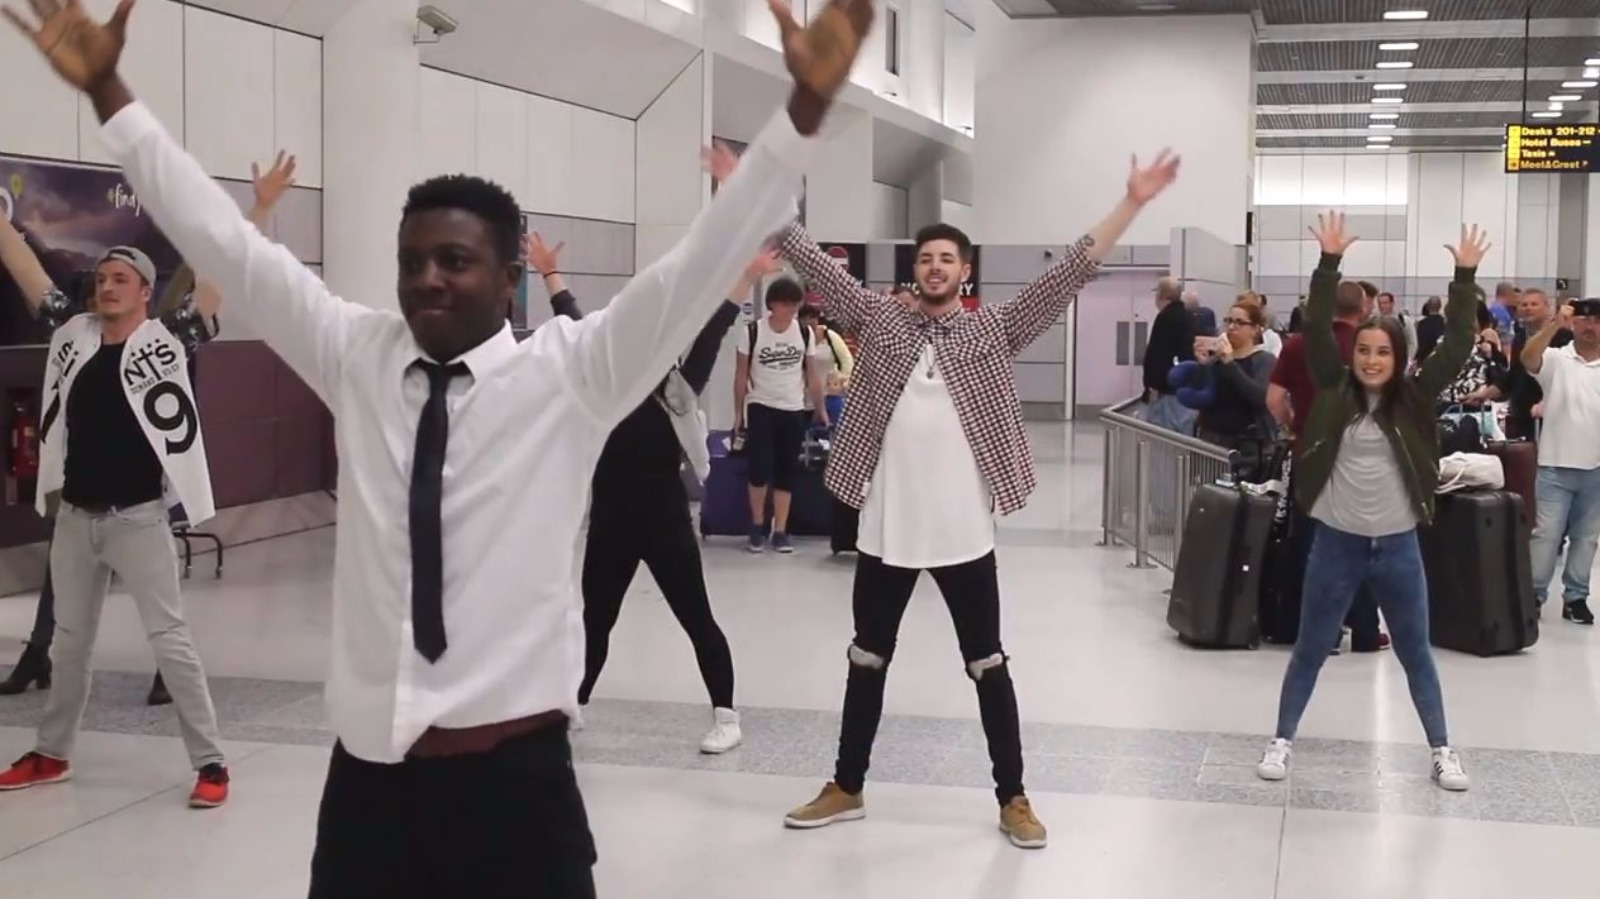 Woman Arrives Back From Holiday To Flash Mob Wedding Proposal